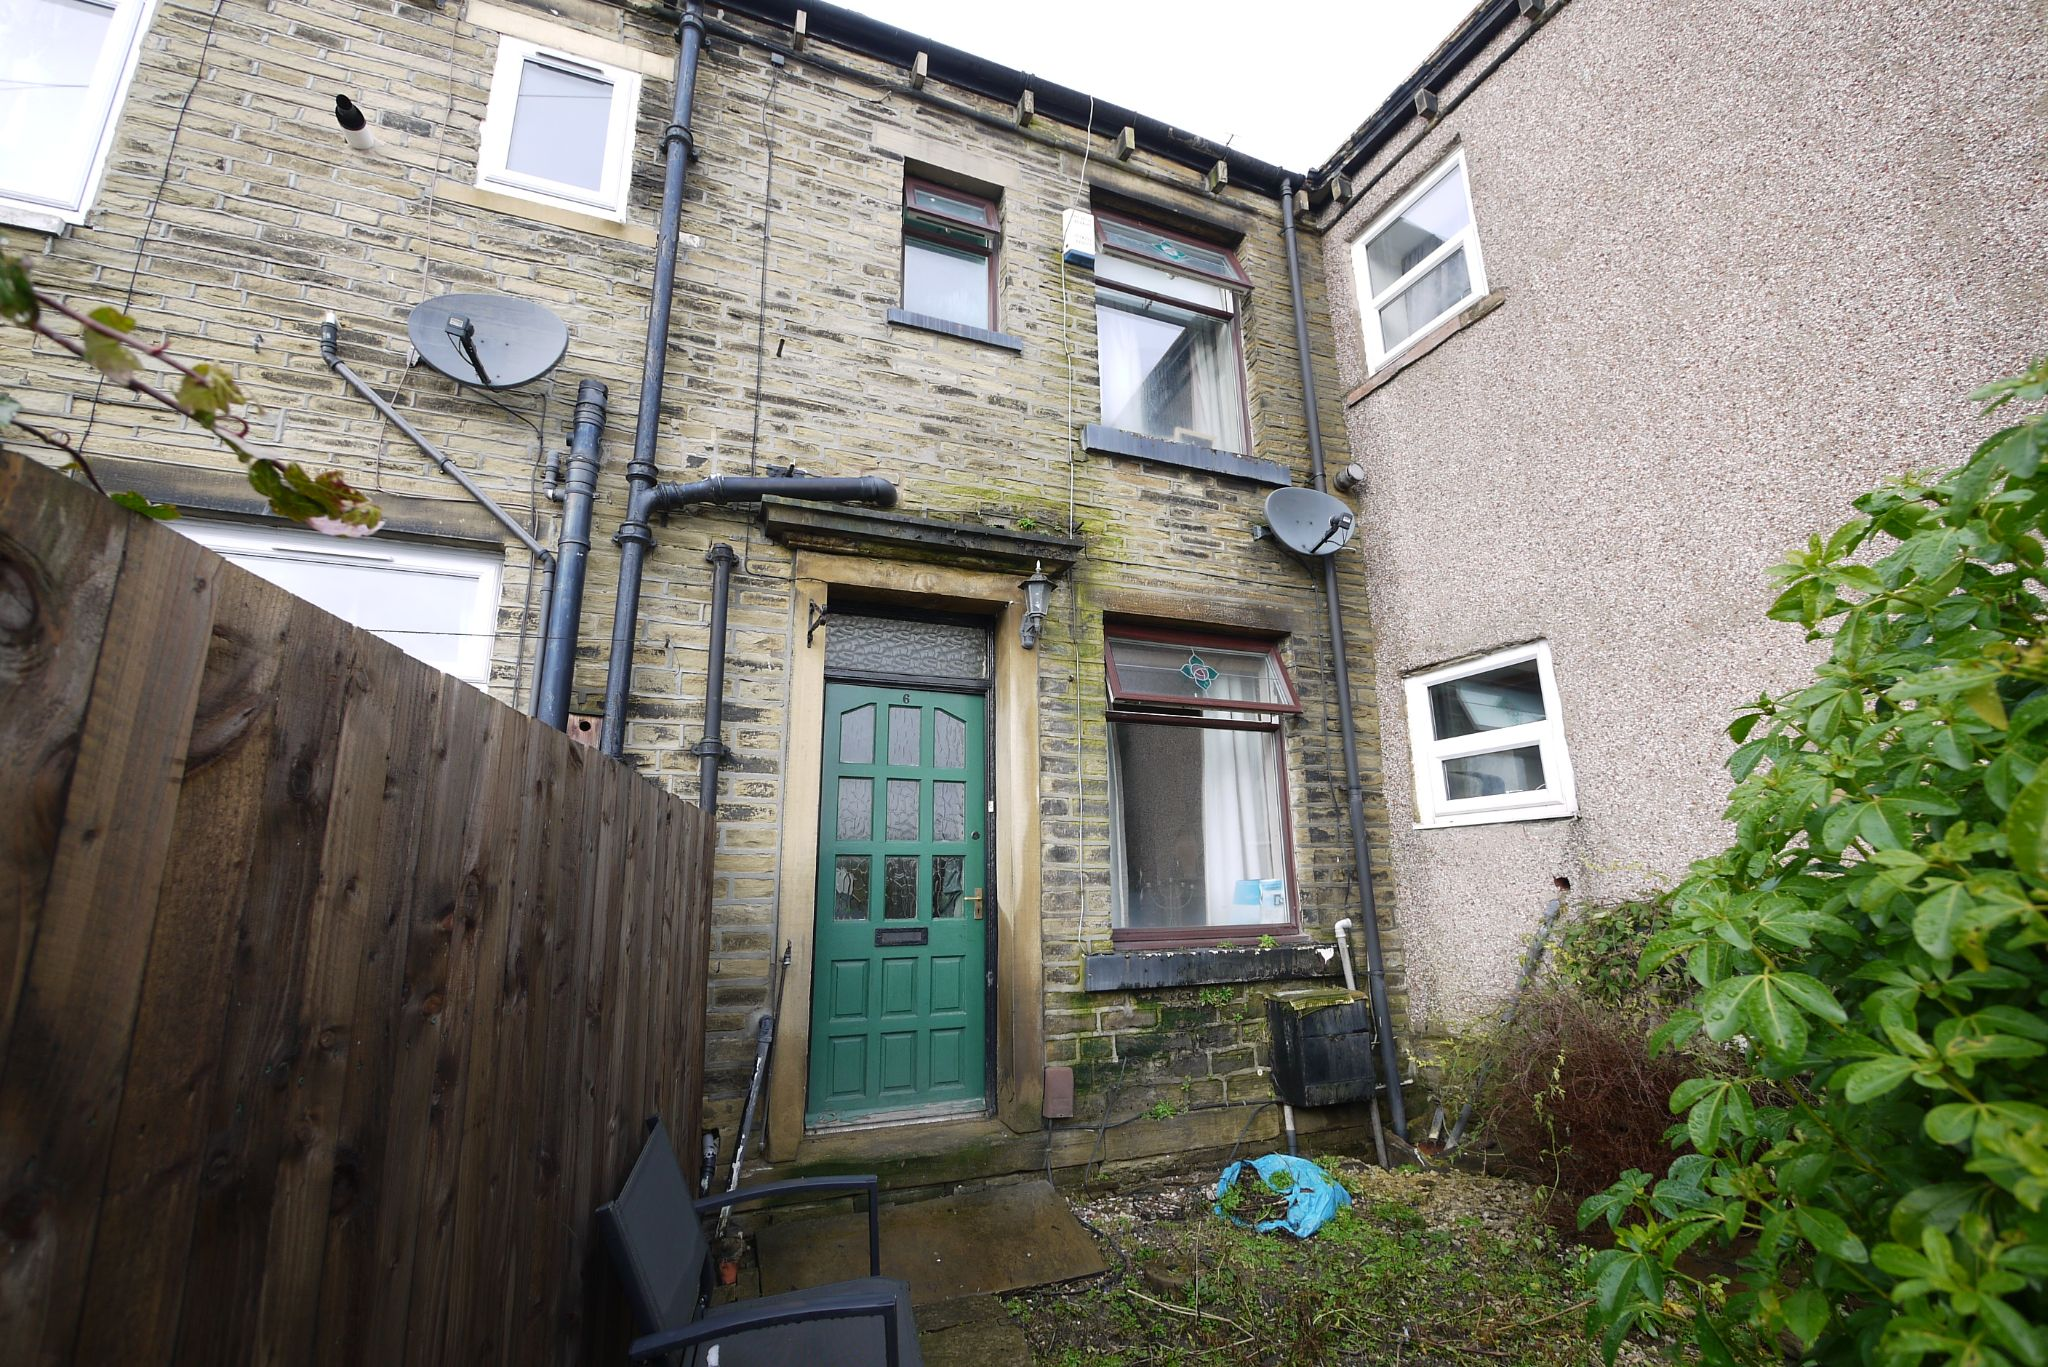 1 bedroom end terraced house SSTC in Brighouse - Photograph 1.